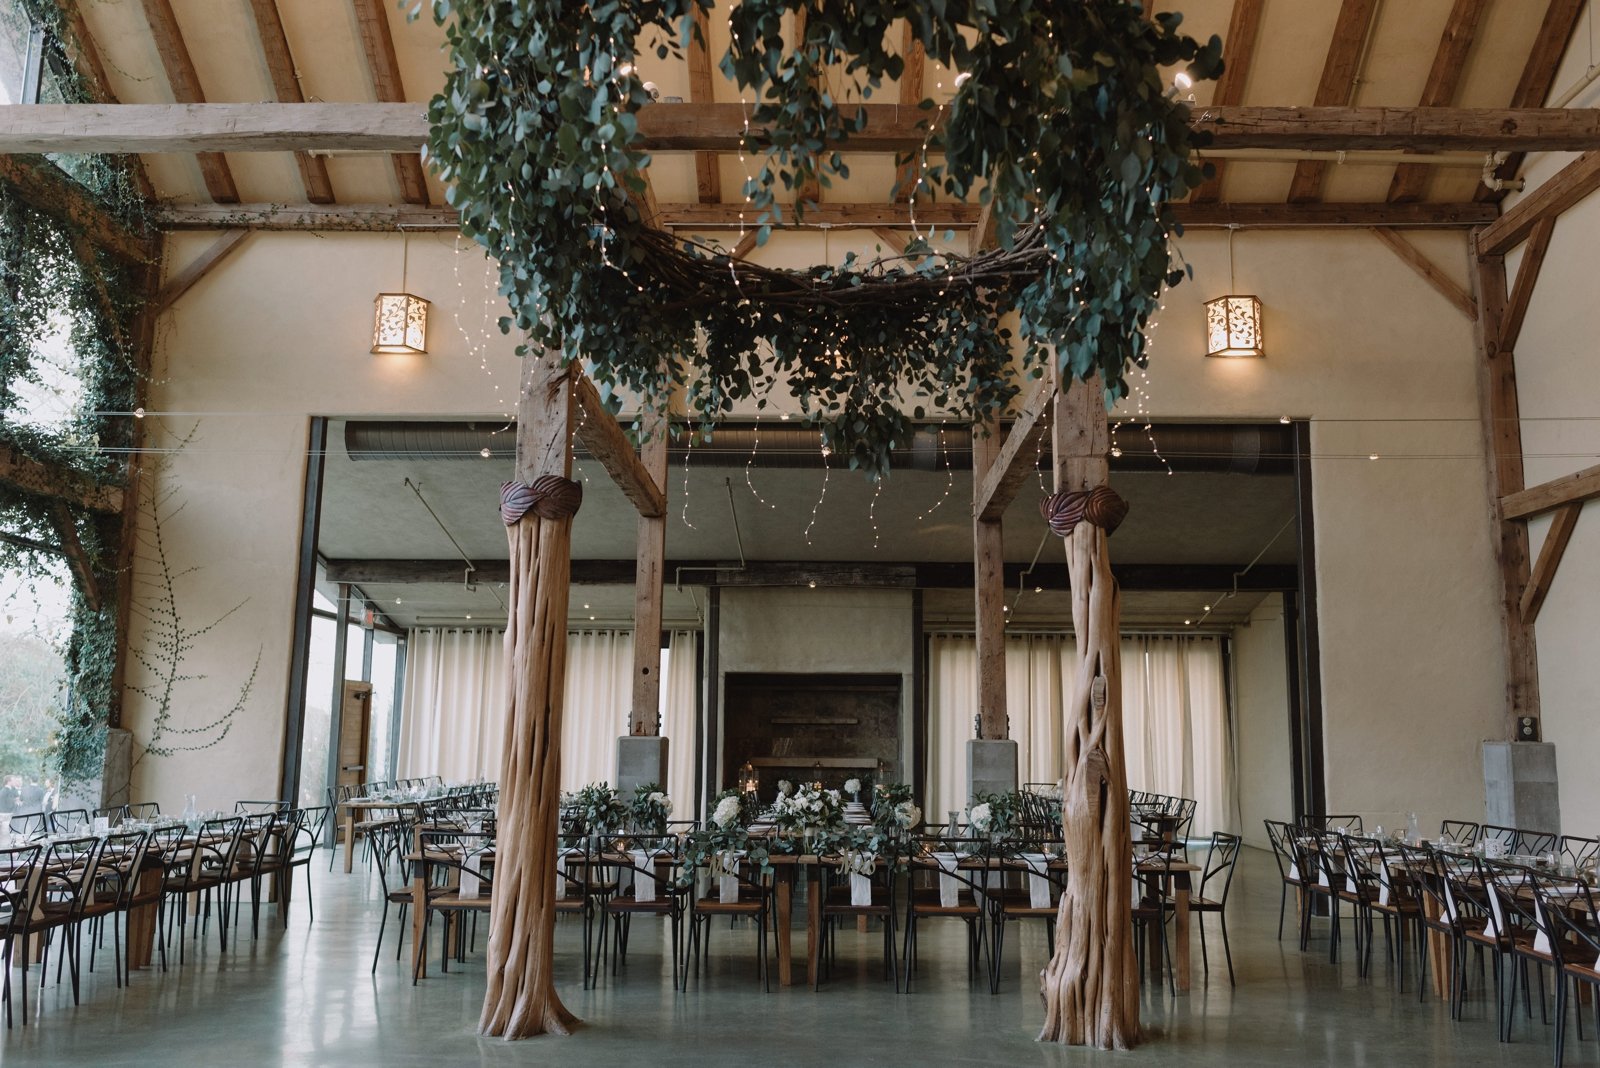 Greenery, eucalyptus leaf, wedding decor inspiration in the newly built ballroom at Barr Mansion